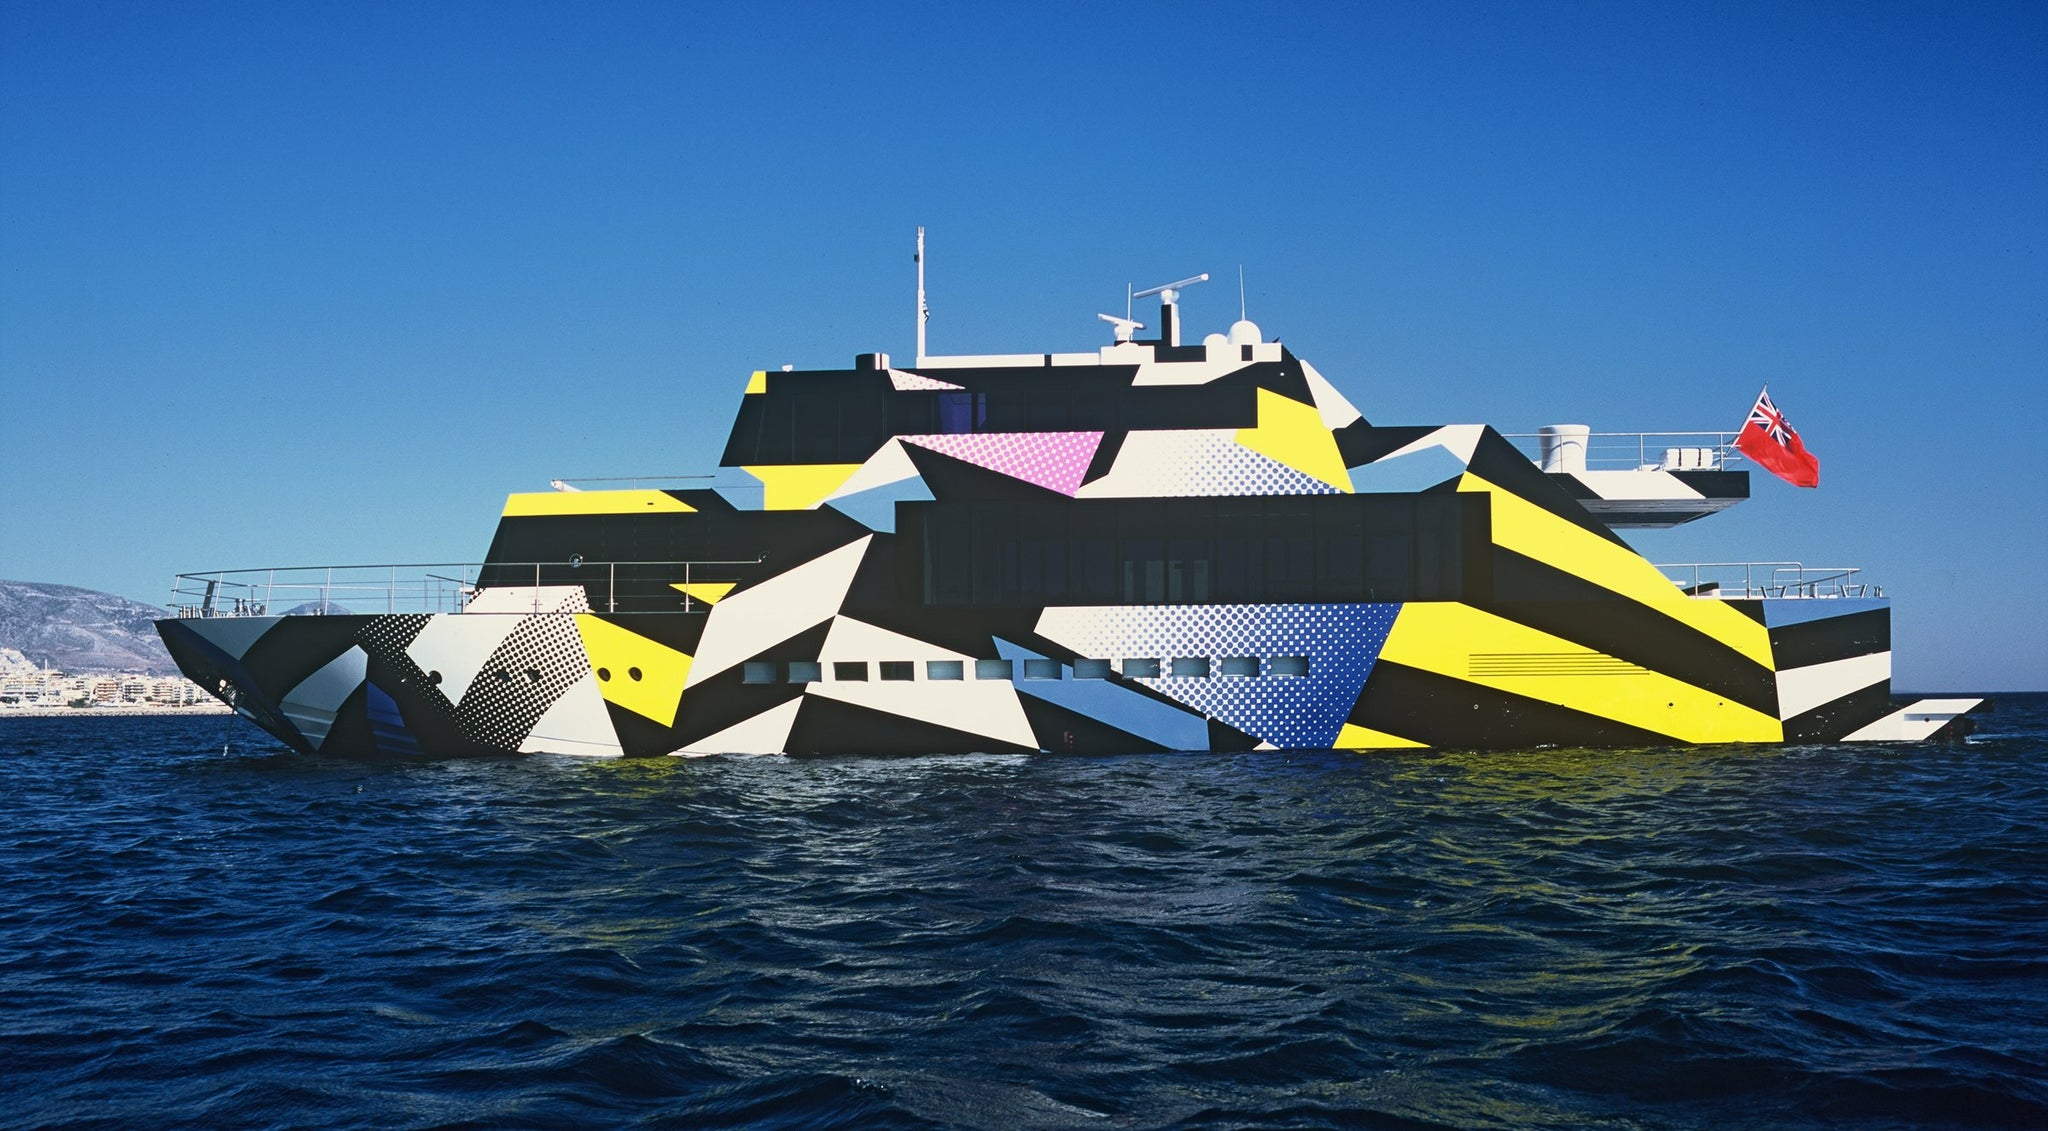 Jeff Koons Guilty Yacht